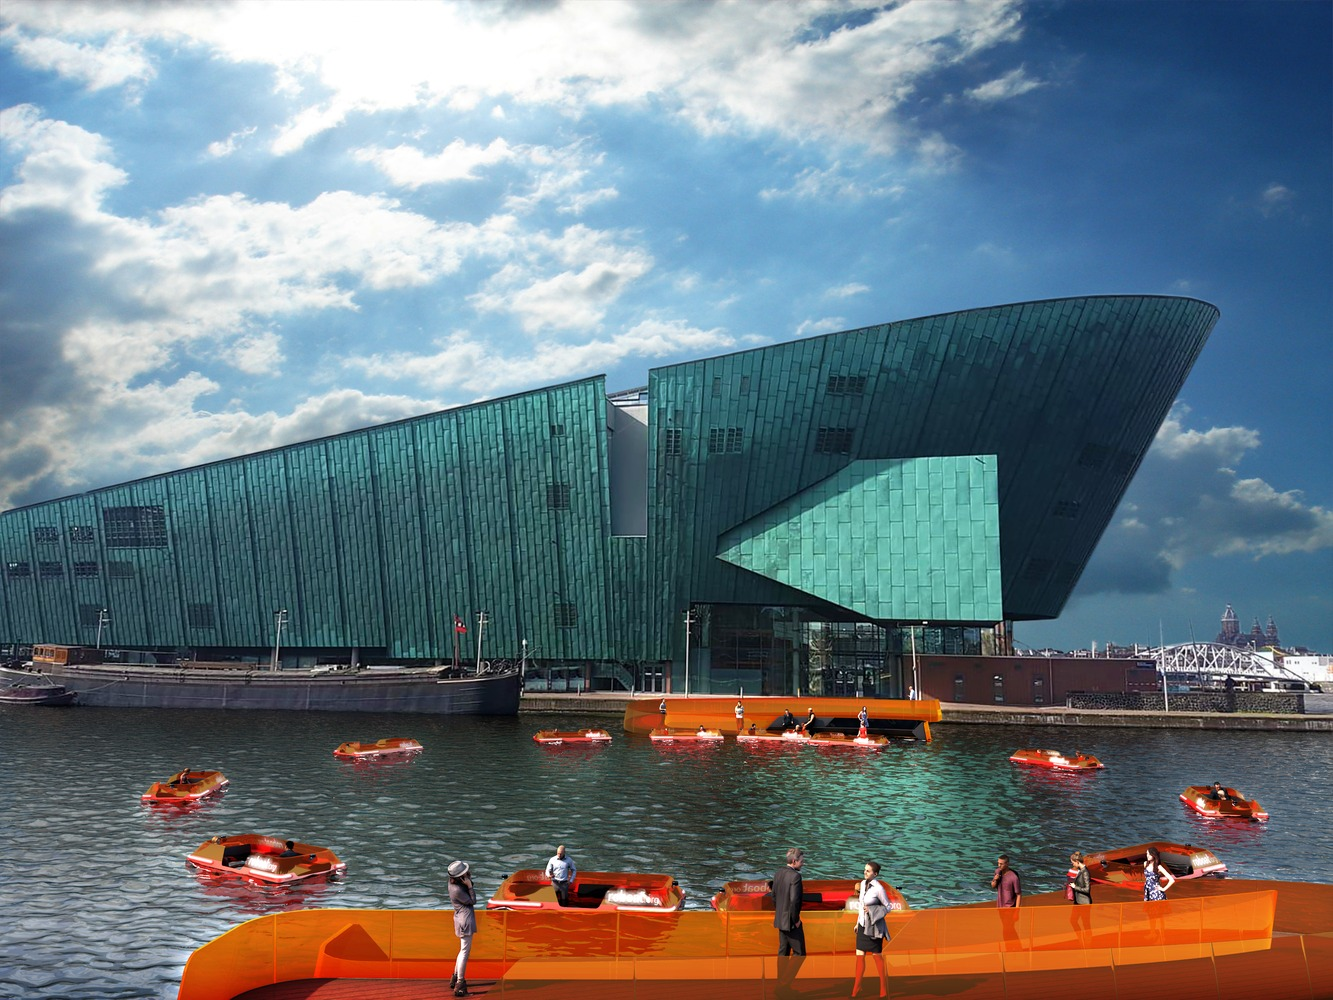 Amsterdam considering a new bridge made from autonomous boats